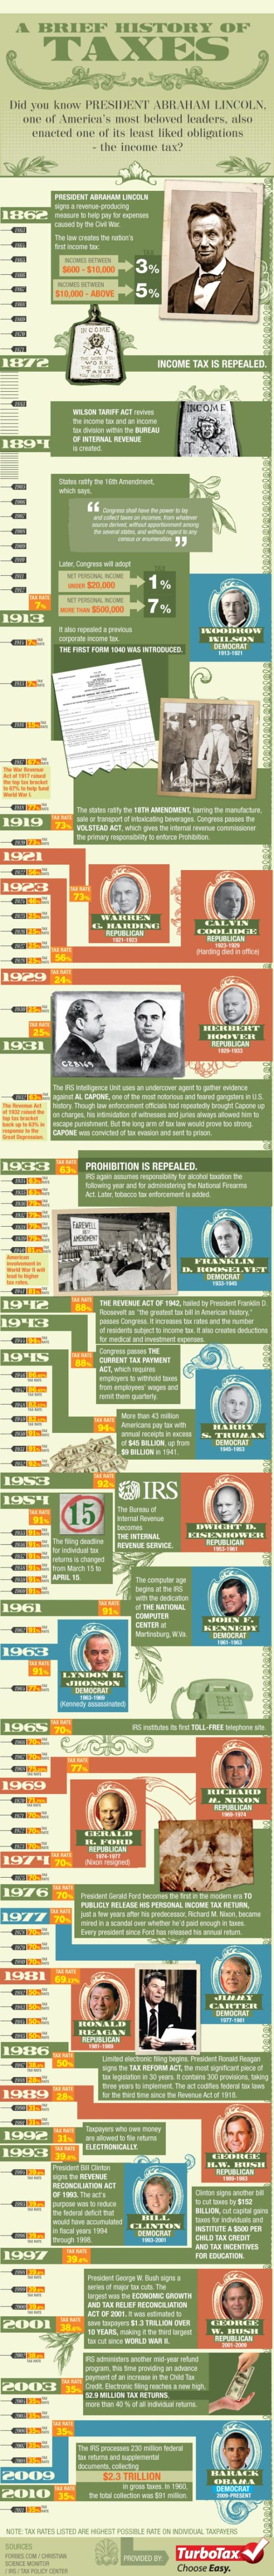 History of Taxes in the US